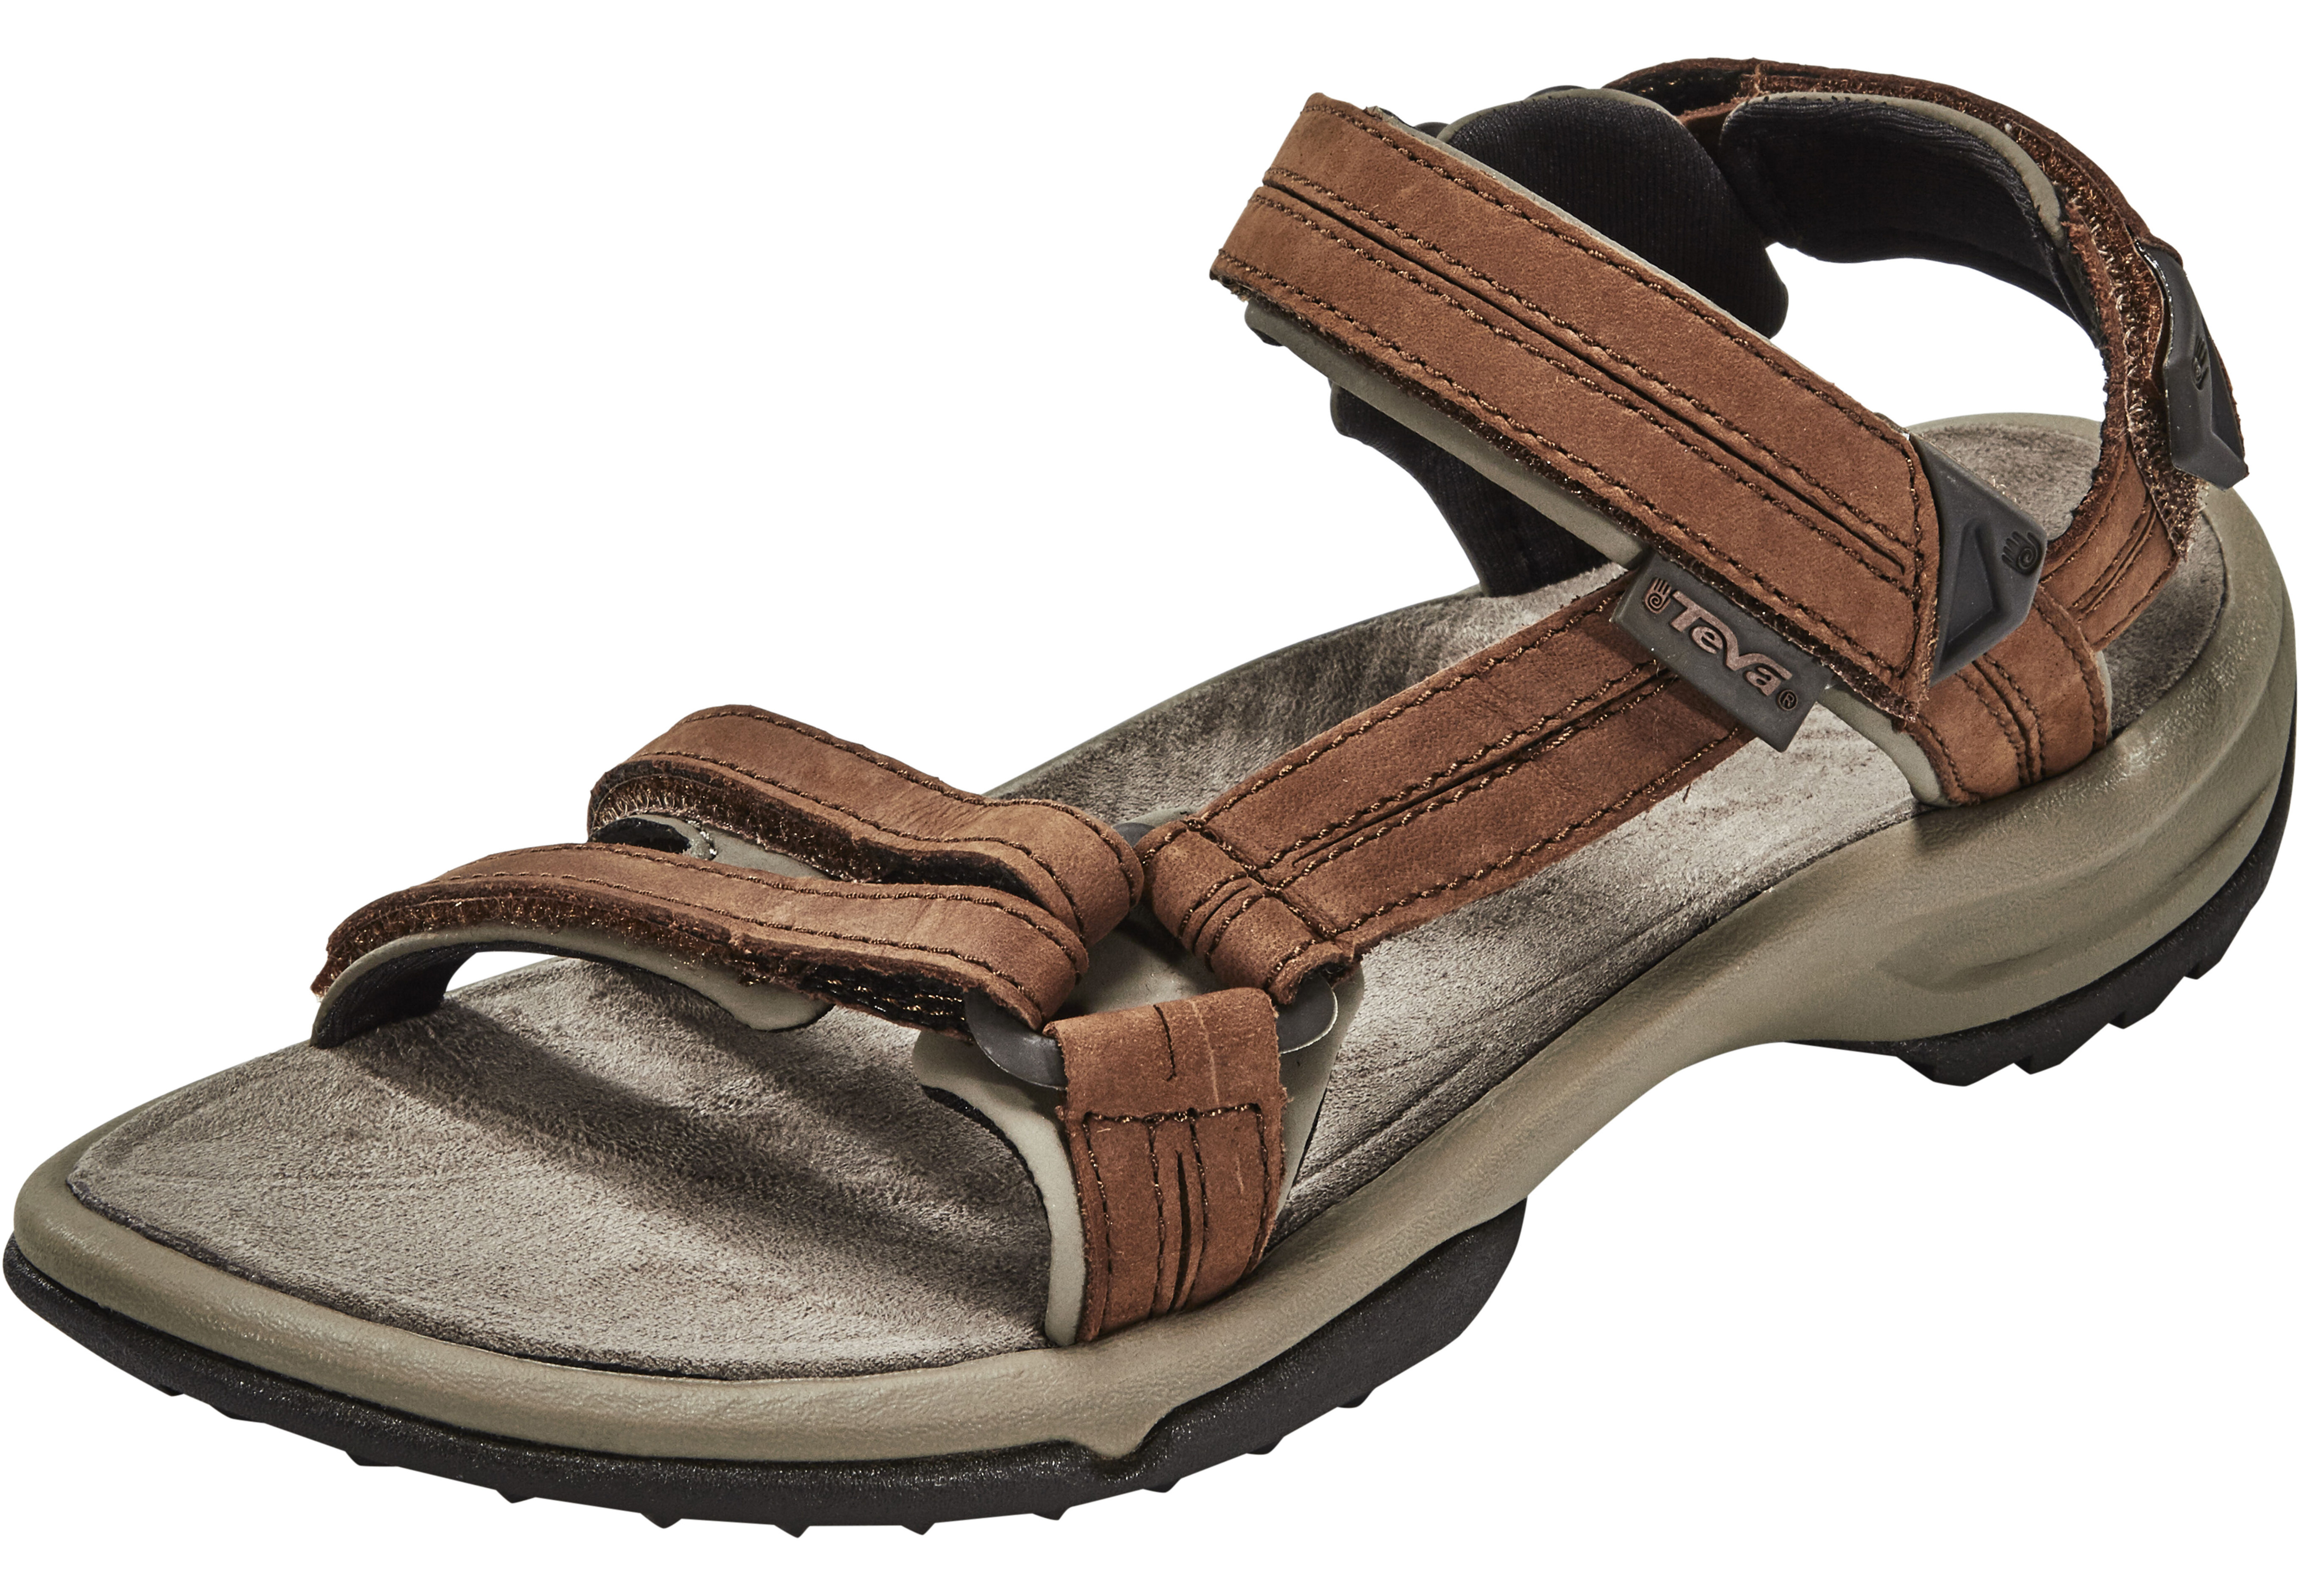 84b7bf8defe450 Teva Terra Fi Lite Leather Sandals Women brown at Addnature.co.uk